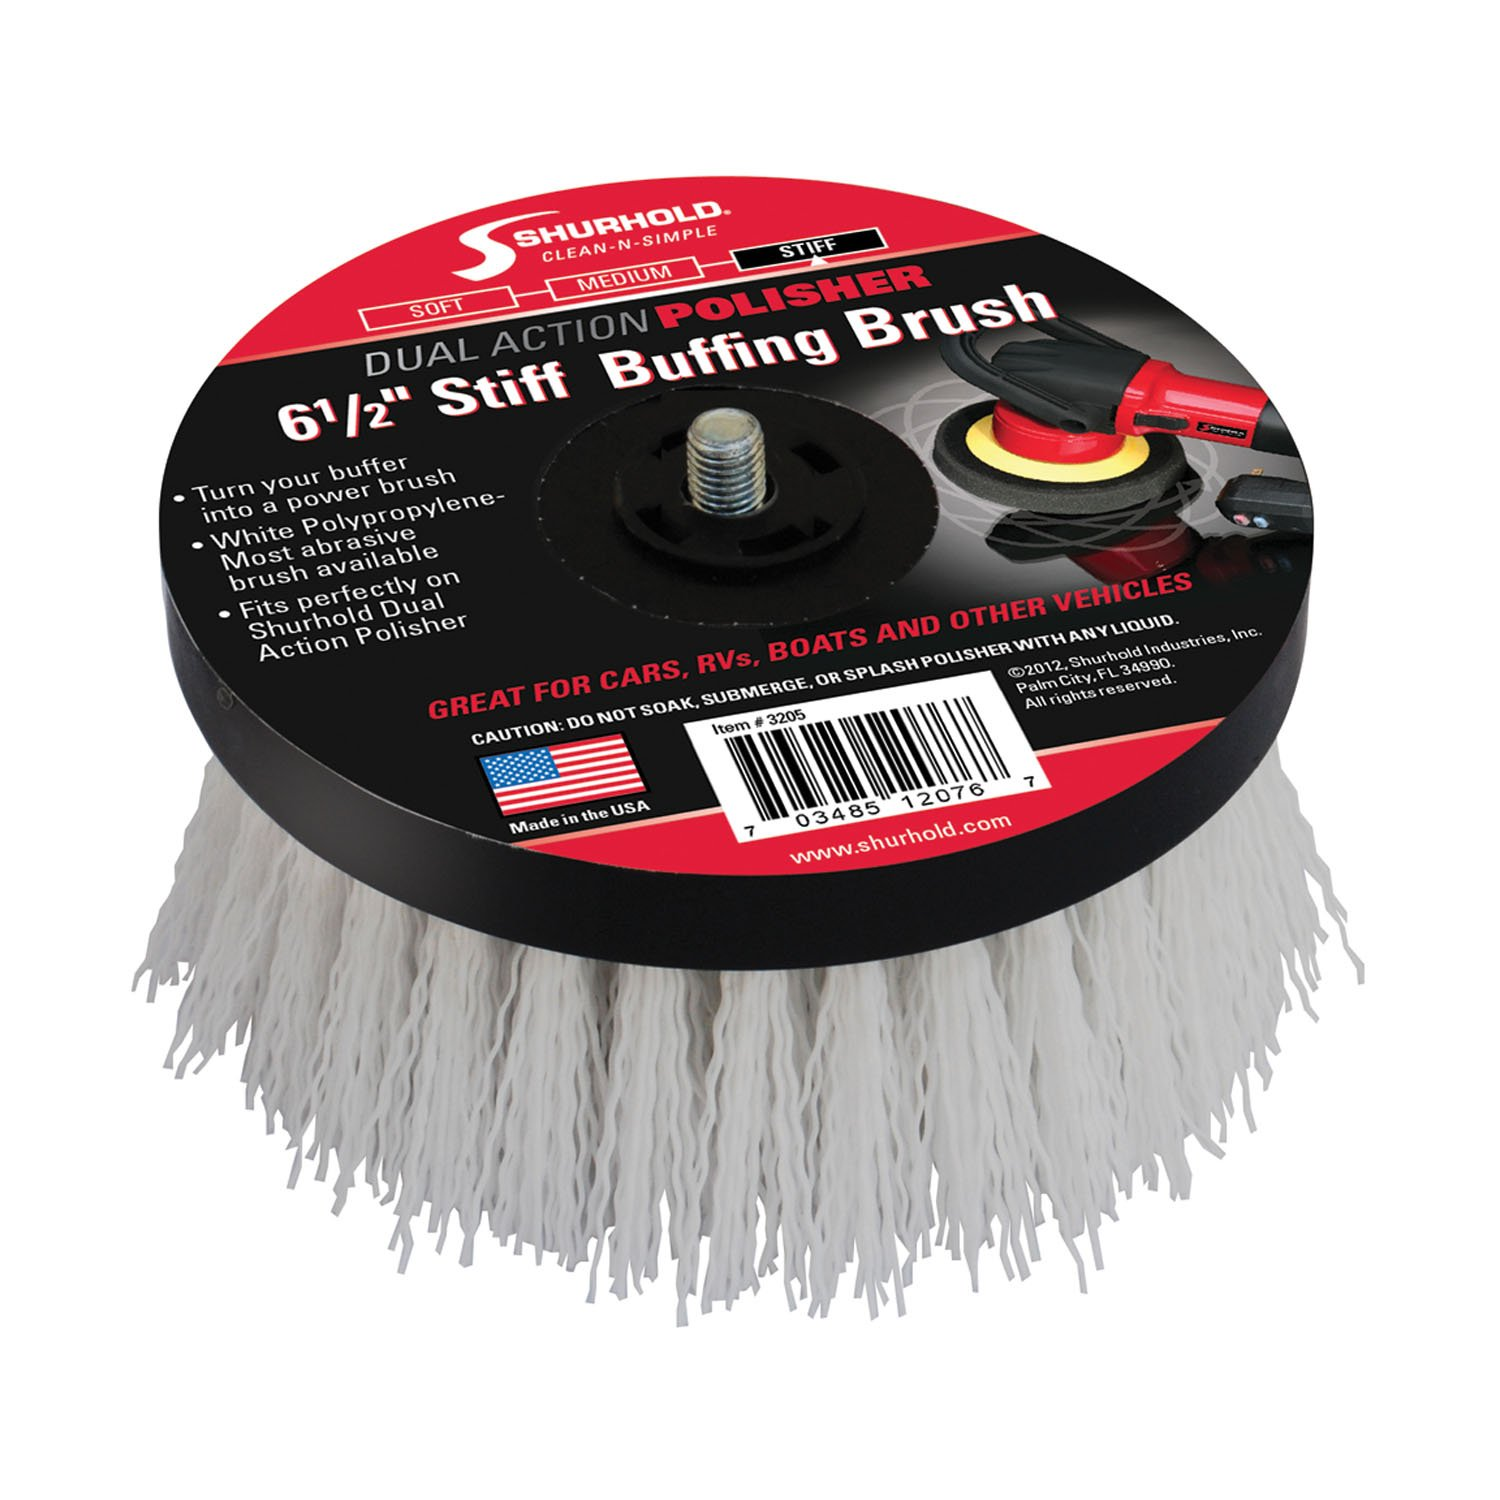 Shurhold 6-1/2'' Stiff Brush For Dual Action Polisher by Shurhold